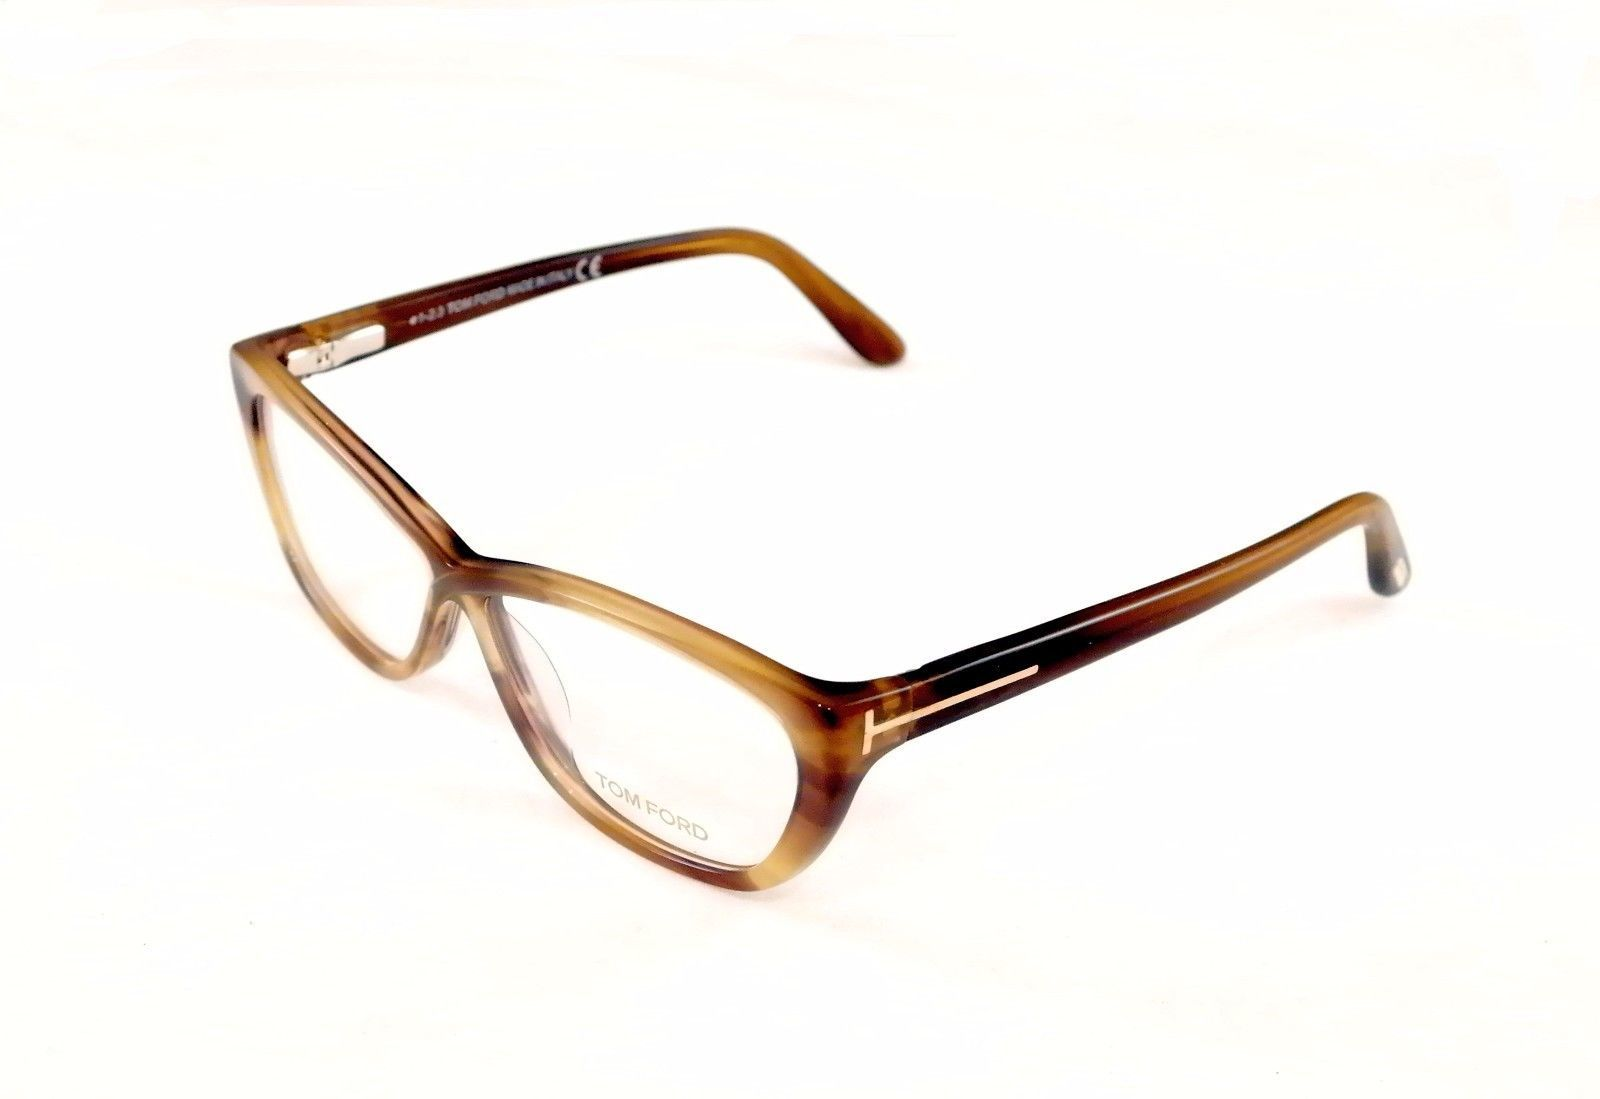 3eed813855 Tom Ford Authentic Eyeglasses Frame TF5227 and similar items. S l1600